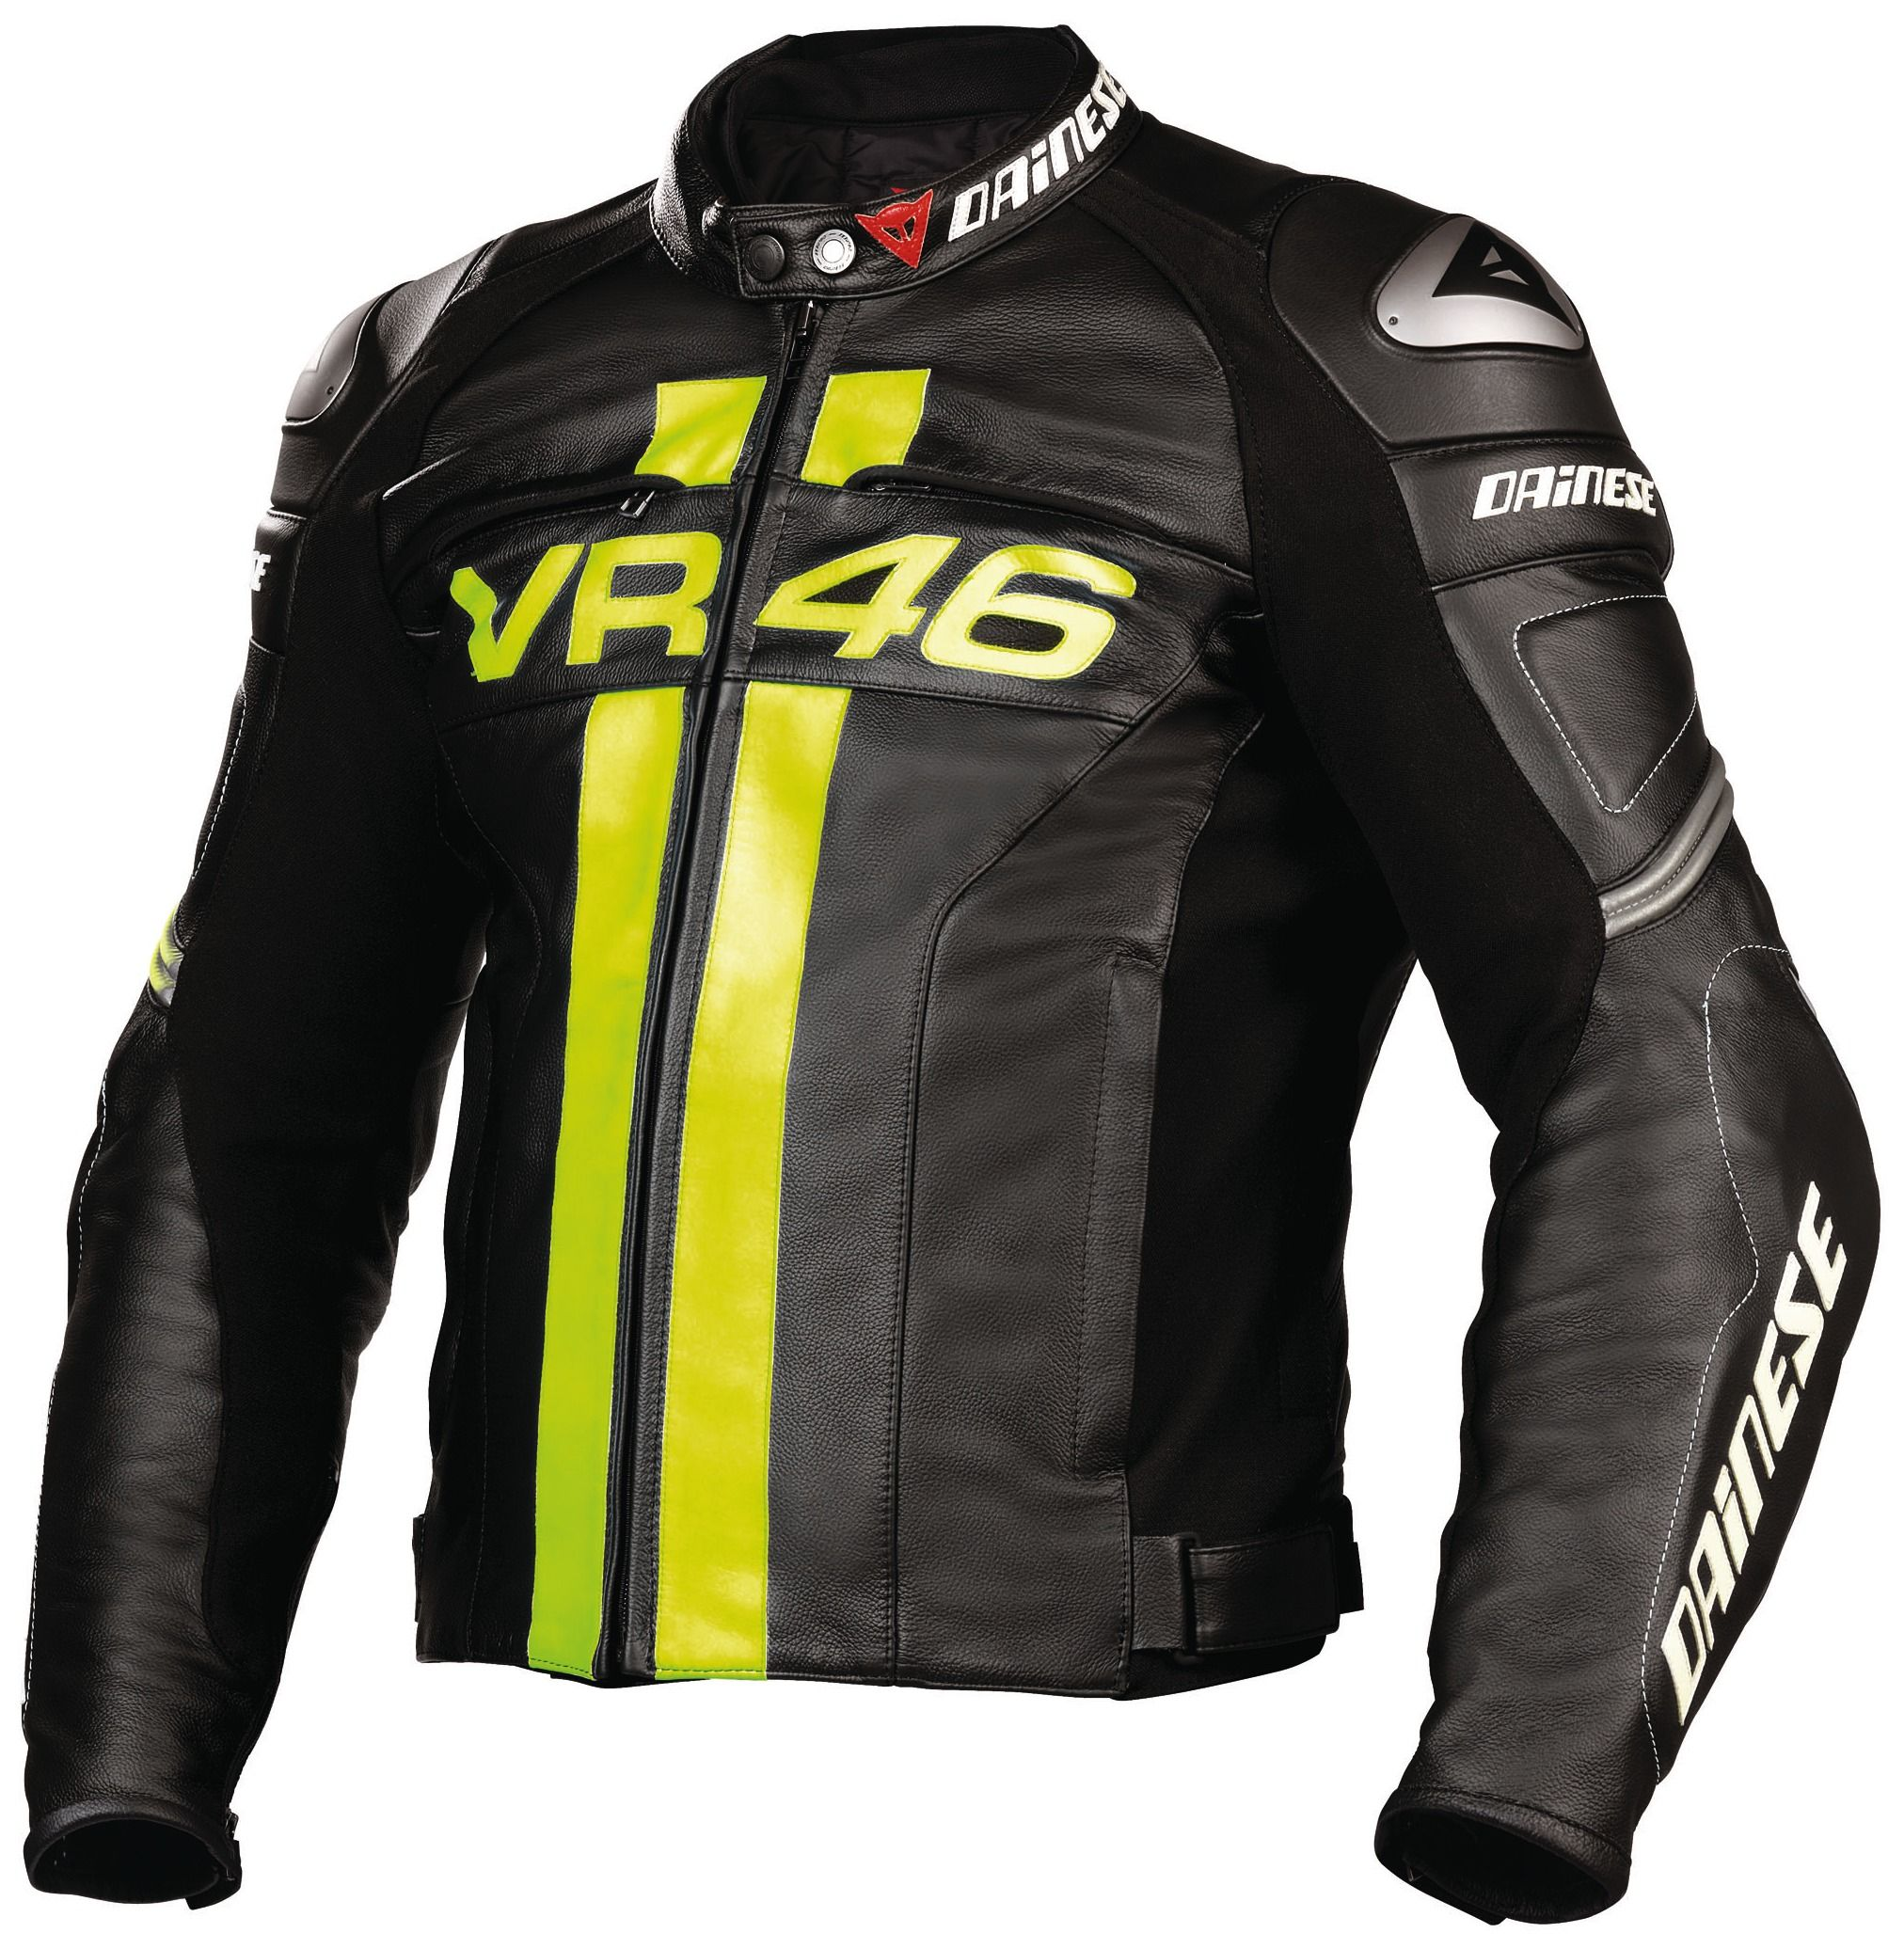 Dainese Vr46 Leather Jacket Size 54 Motorcycle Racing Jacket Motorcycle Jacket Motorbike Jackets